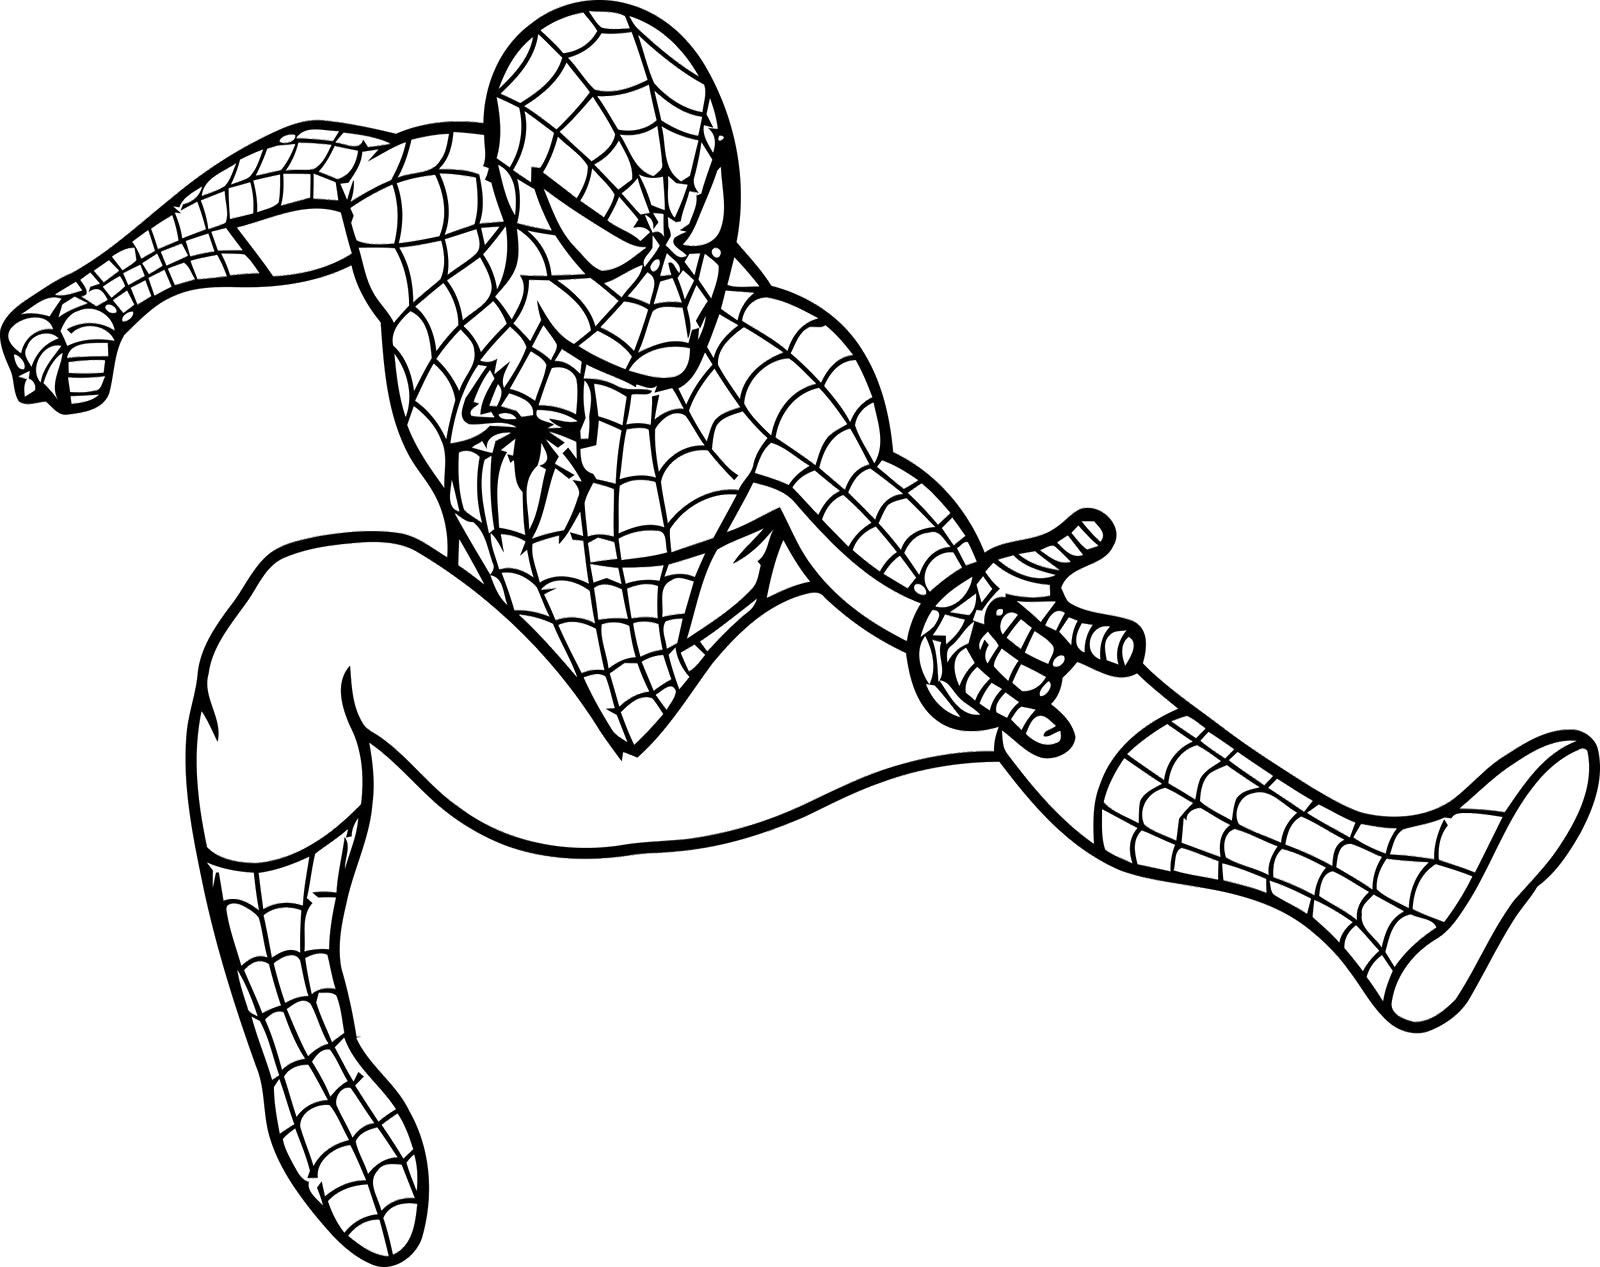 Spiderman Coloring Pages Only Coloring Pages